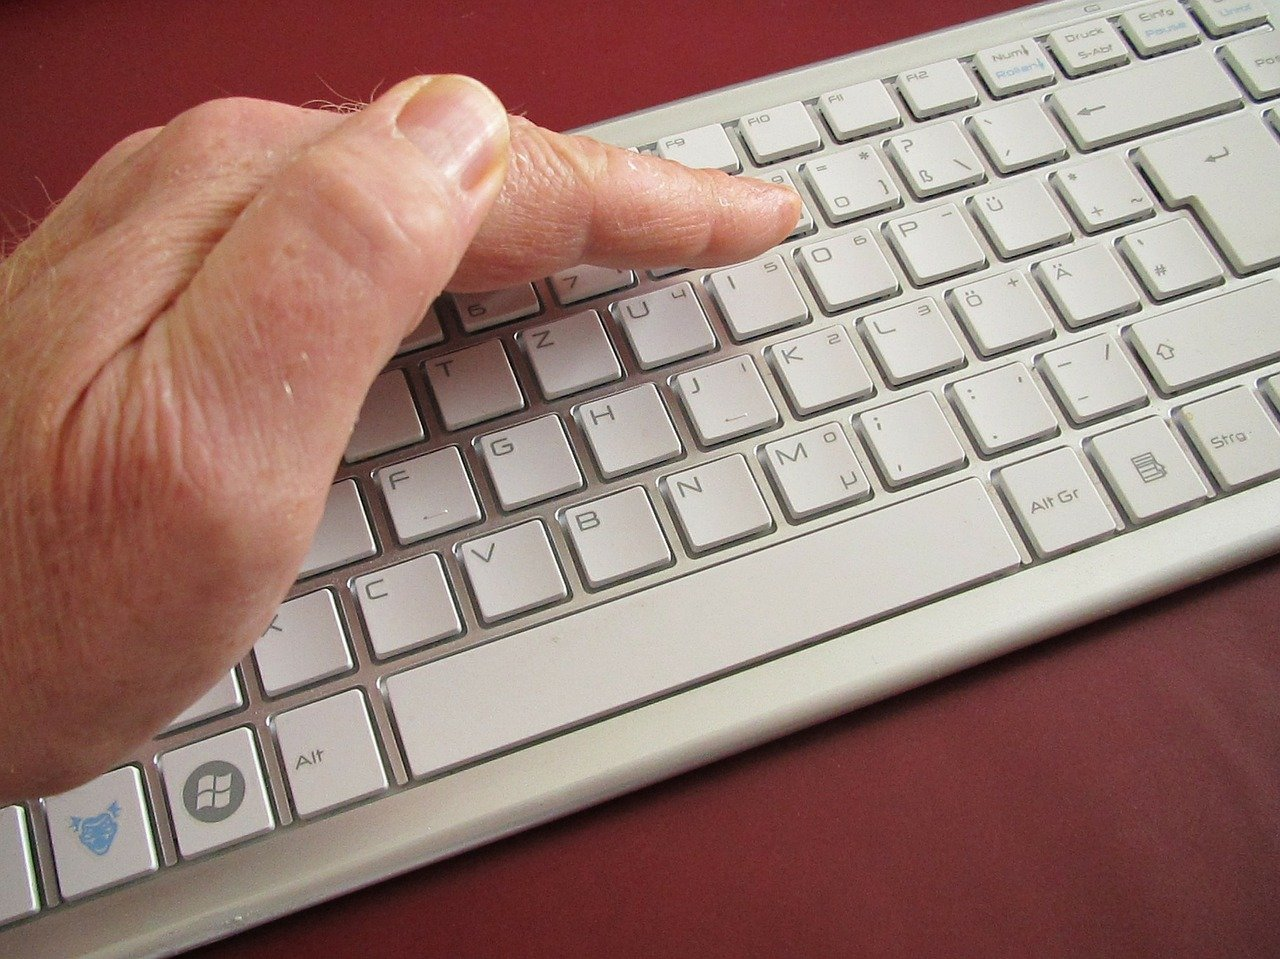 Protect keyboard from prying eyes